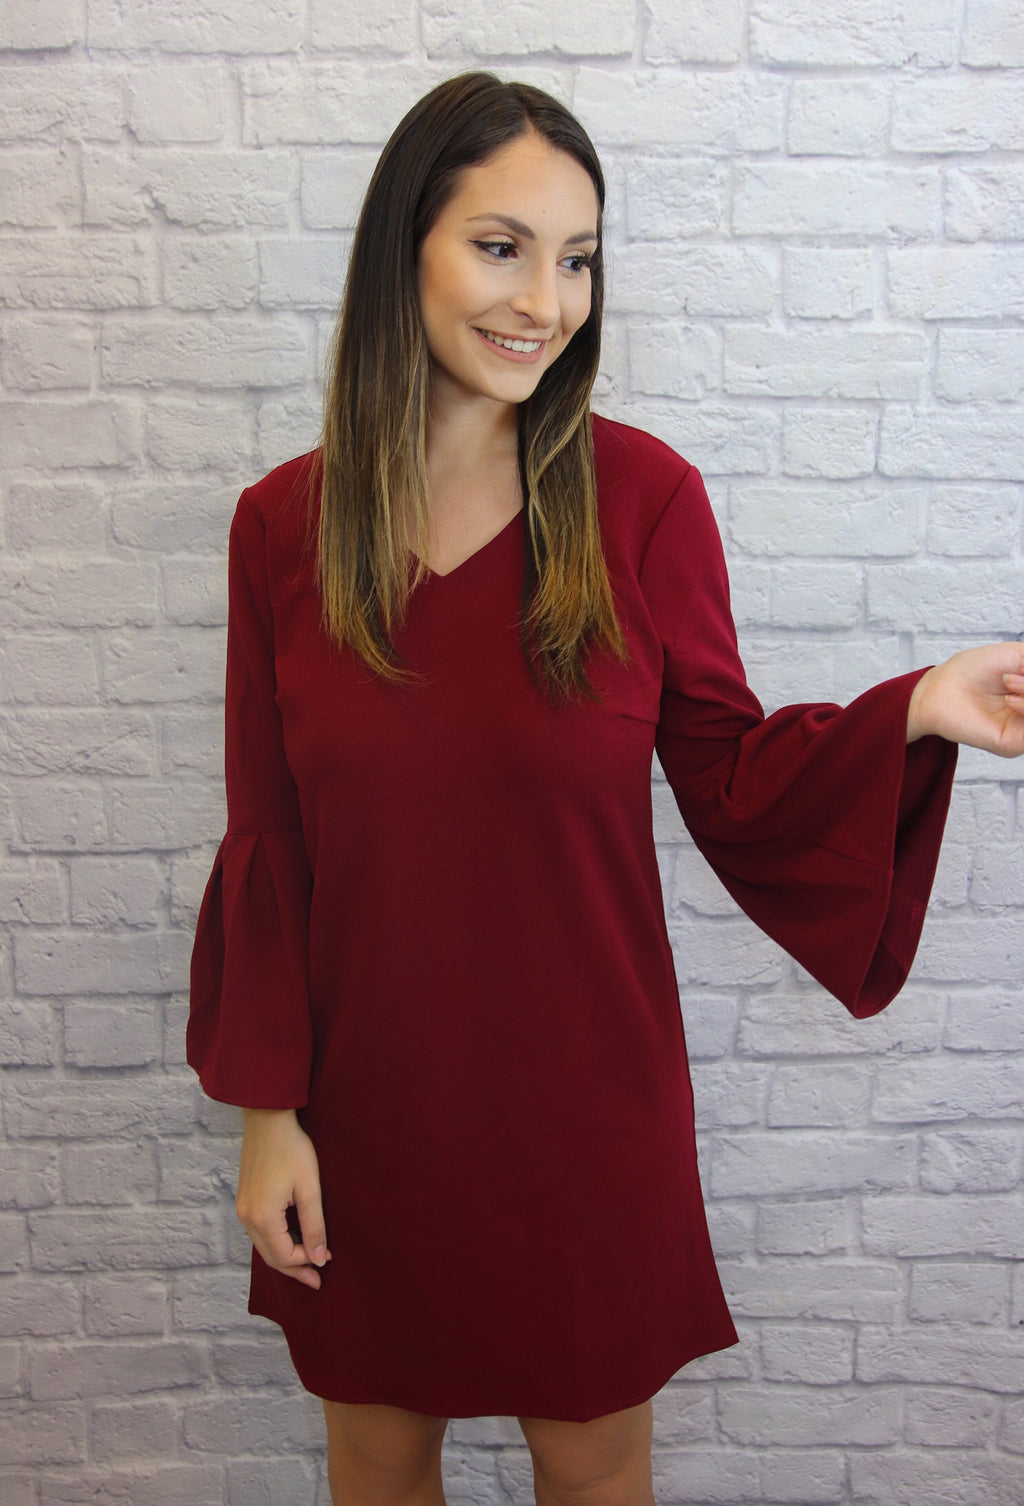 Red, Bell-Sleeve Dress - Shop Core Collection